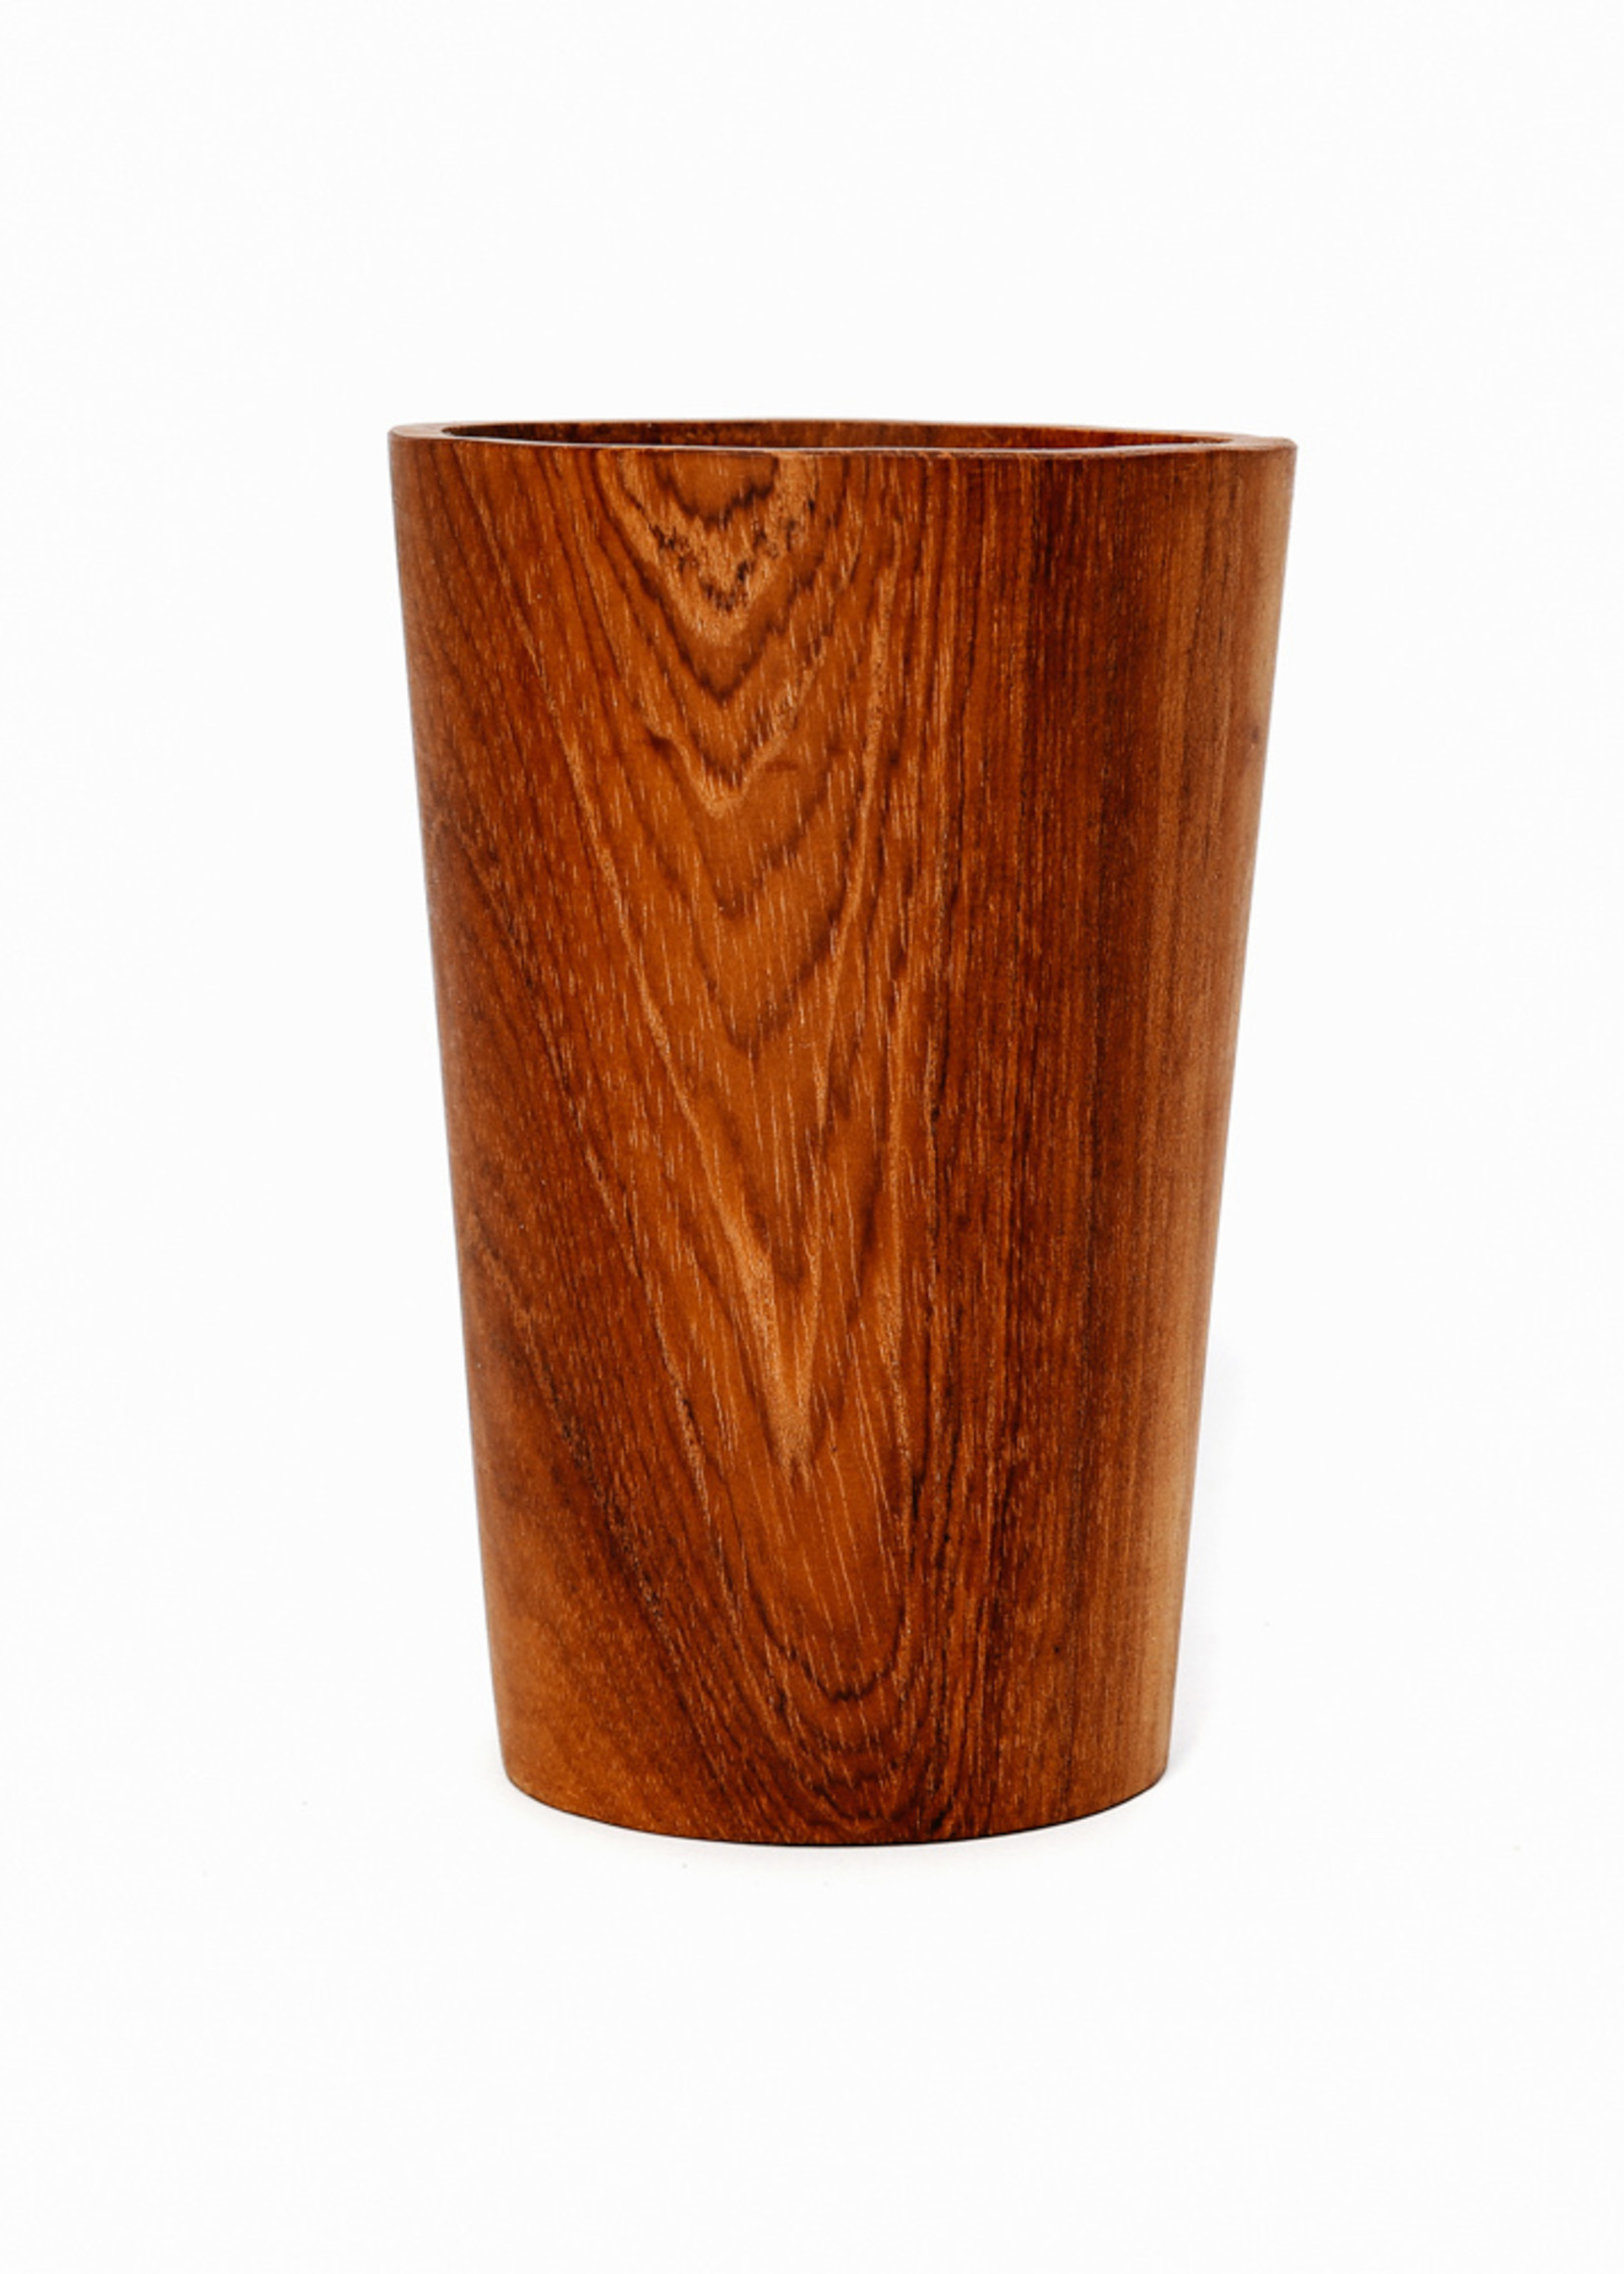 The Teak Root Cup - Low